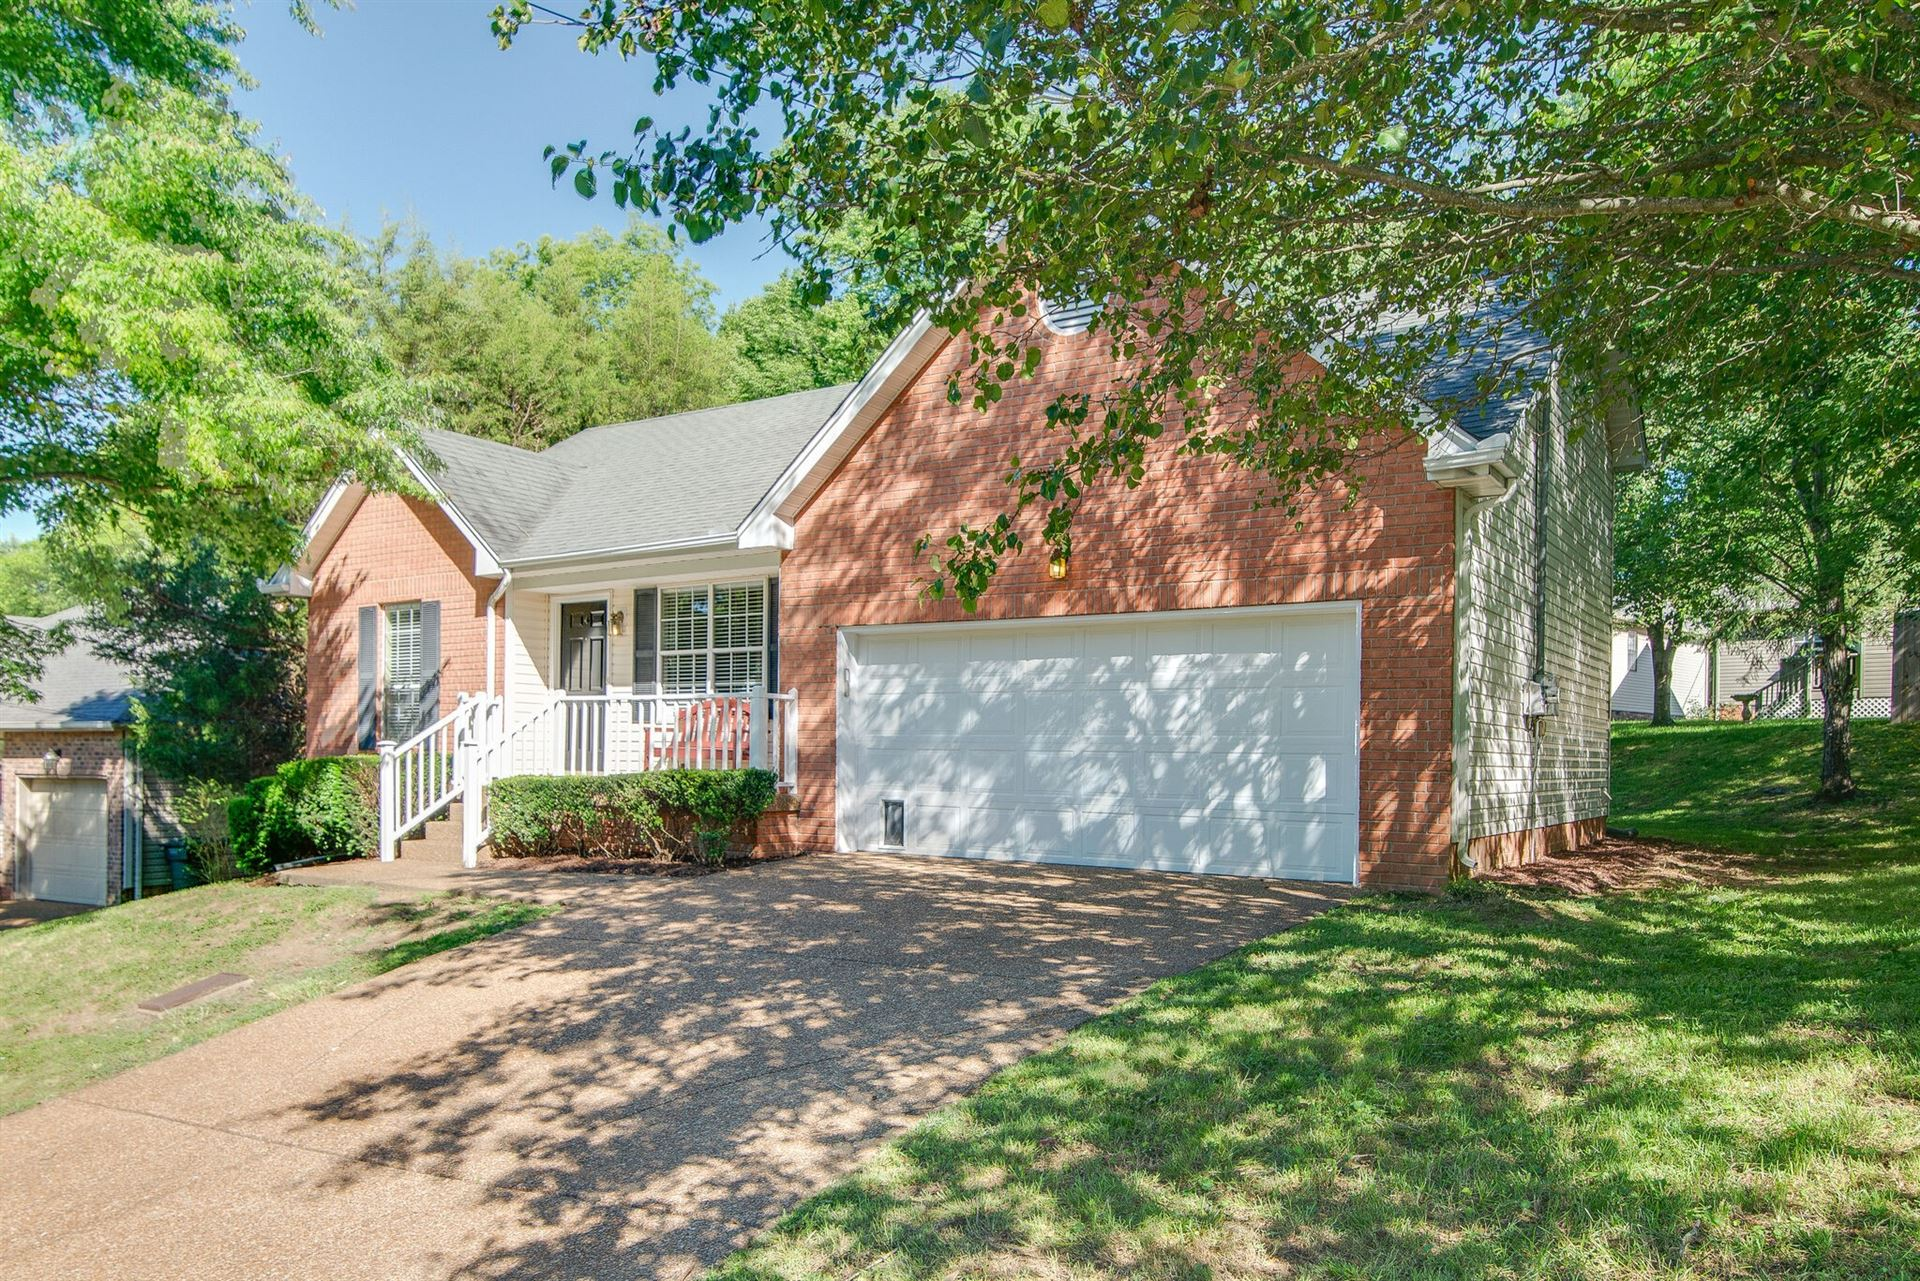 Photo of 204 Woodfield Cv, Nashville, TN 37211 (MLS # 2156530)